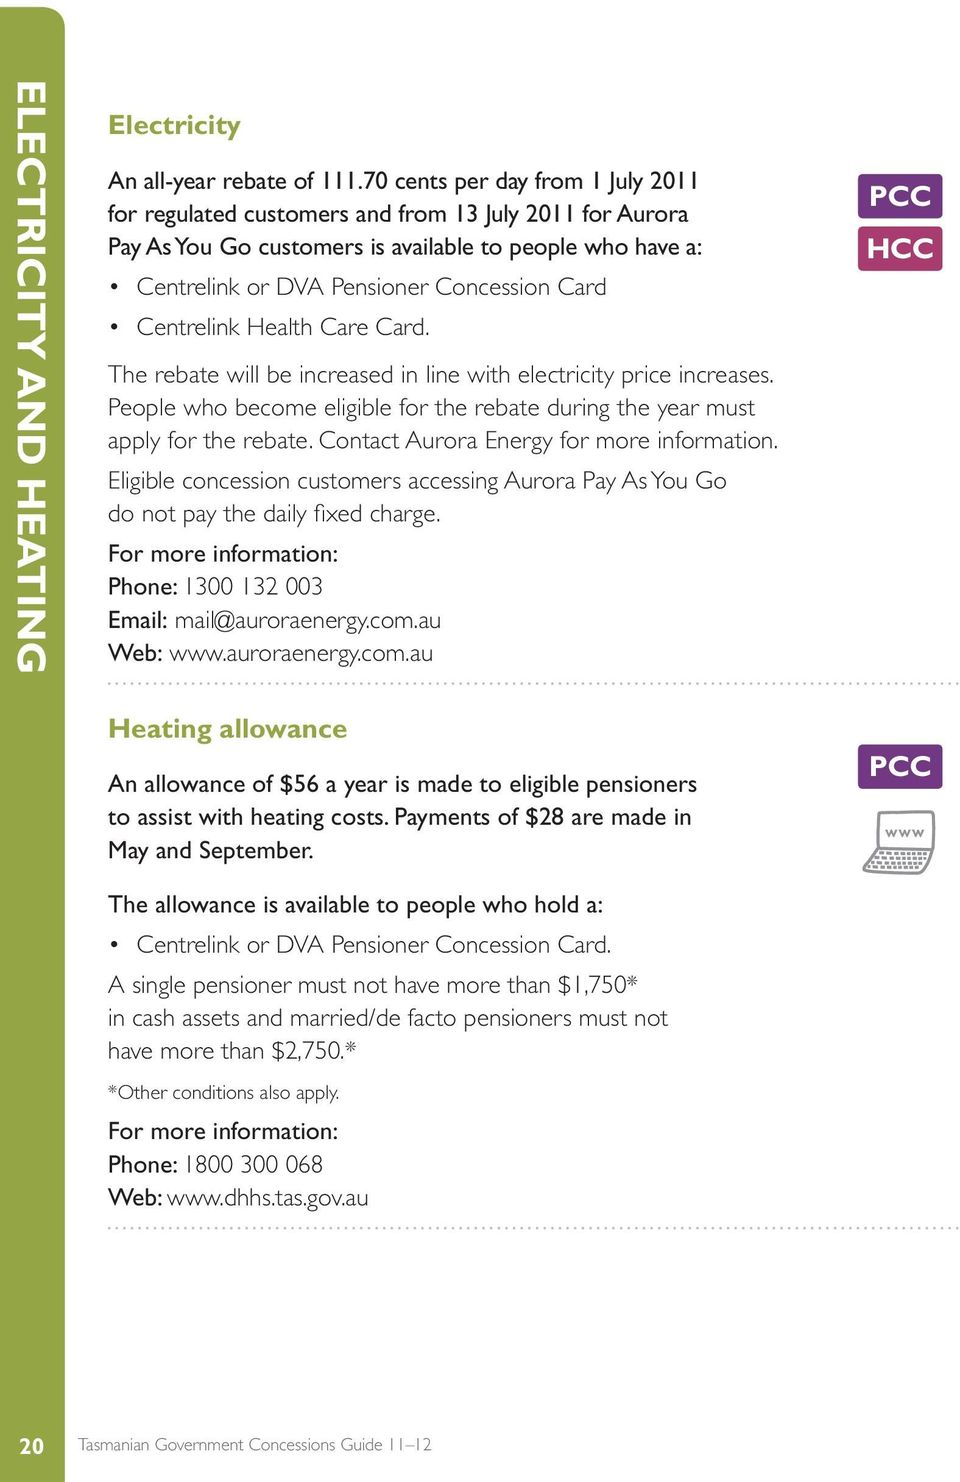 Centrelink Health Care Card. The rebate will be increased in line with electricity price increases. People who become eligible for the rebate during the year must apply for the rebate.